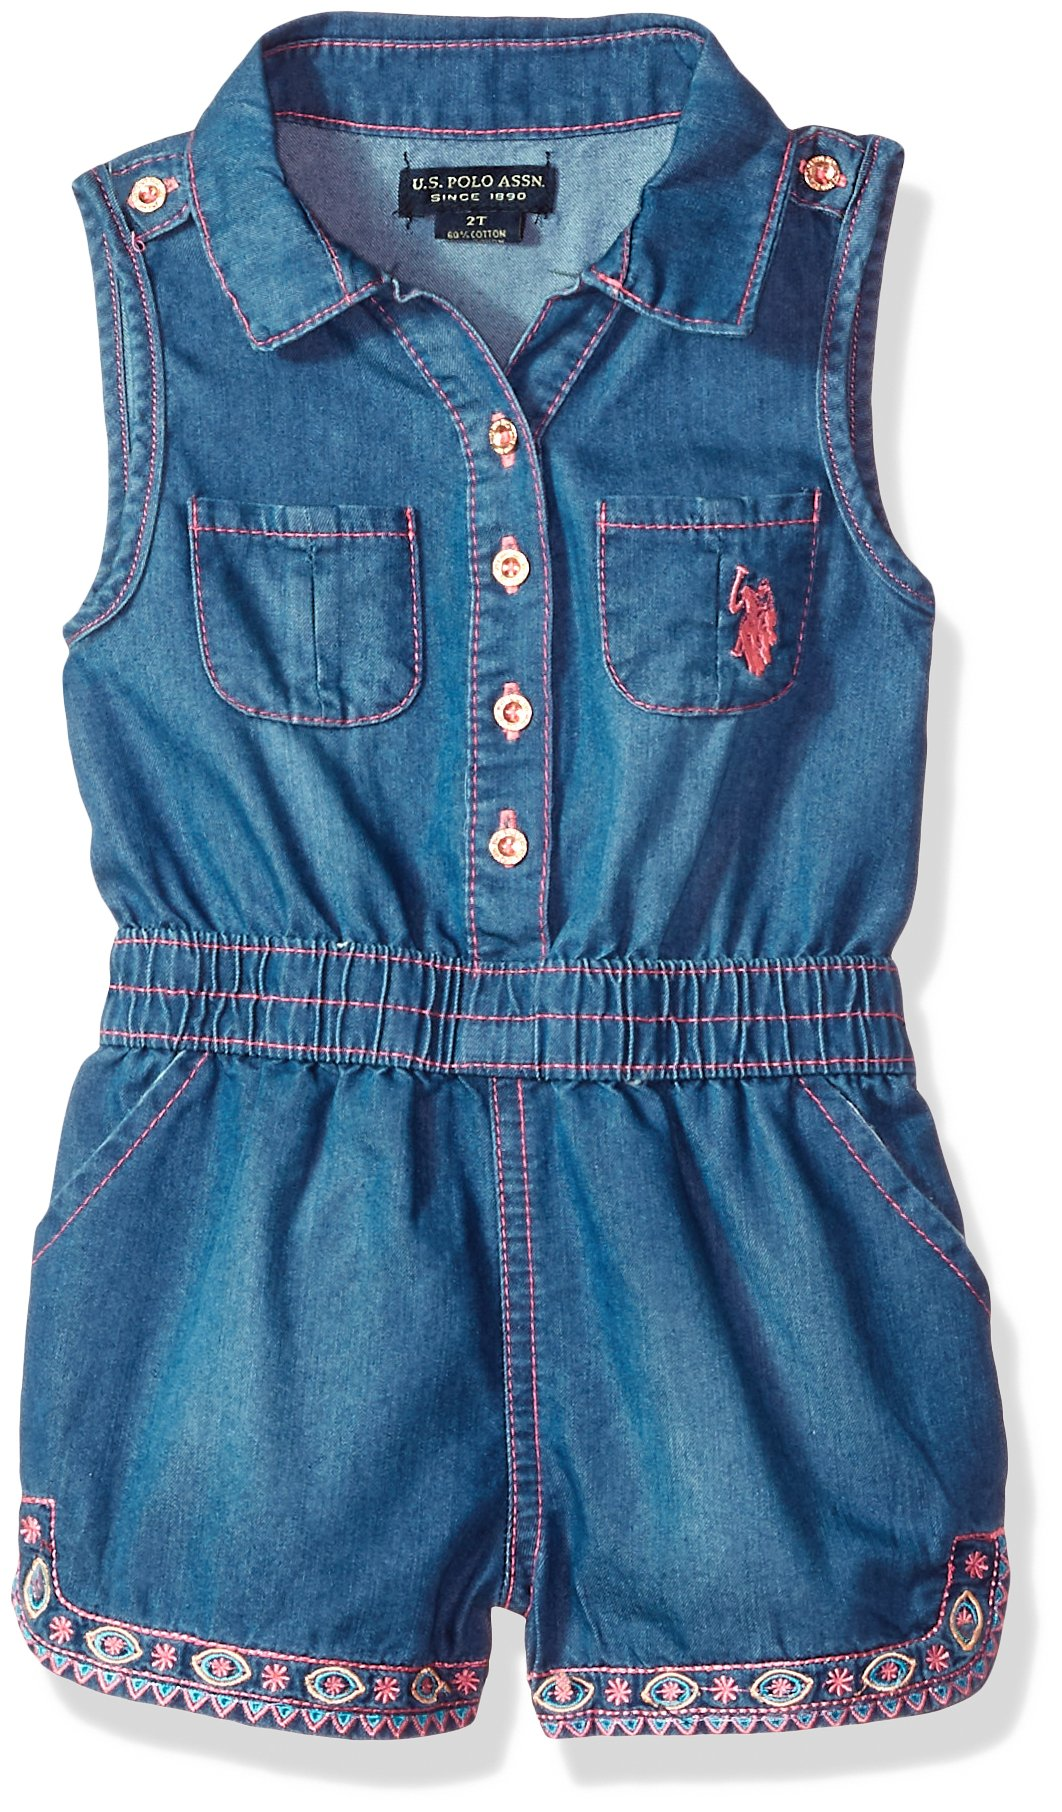 U.S. Polo Assn.. Toddler Girls' Romper, Button Front Neon Pink Embroidery Medium Wash, 2T